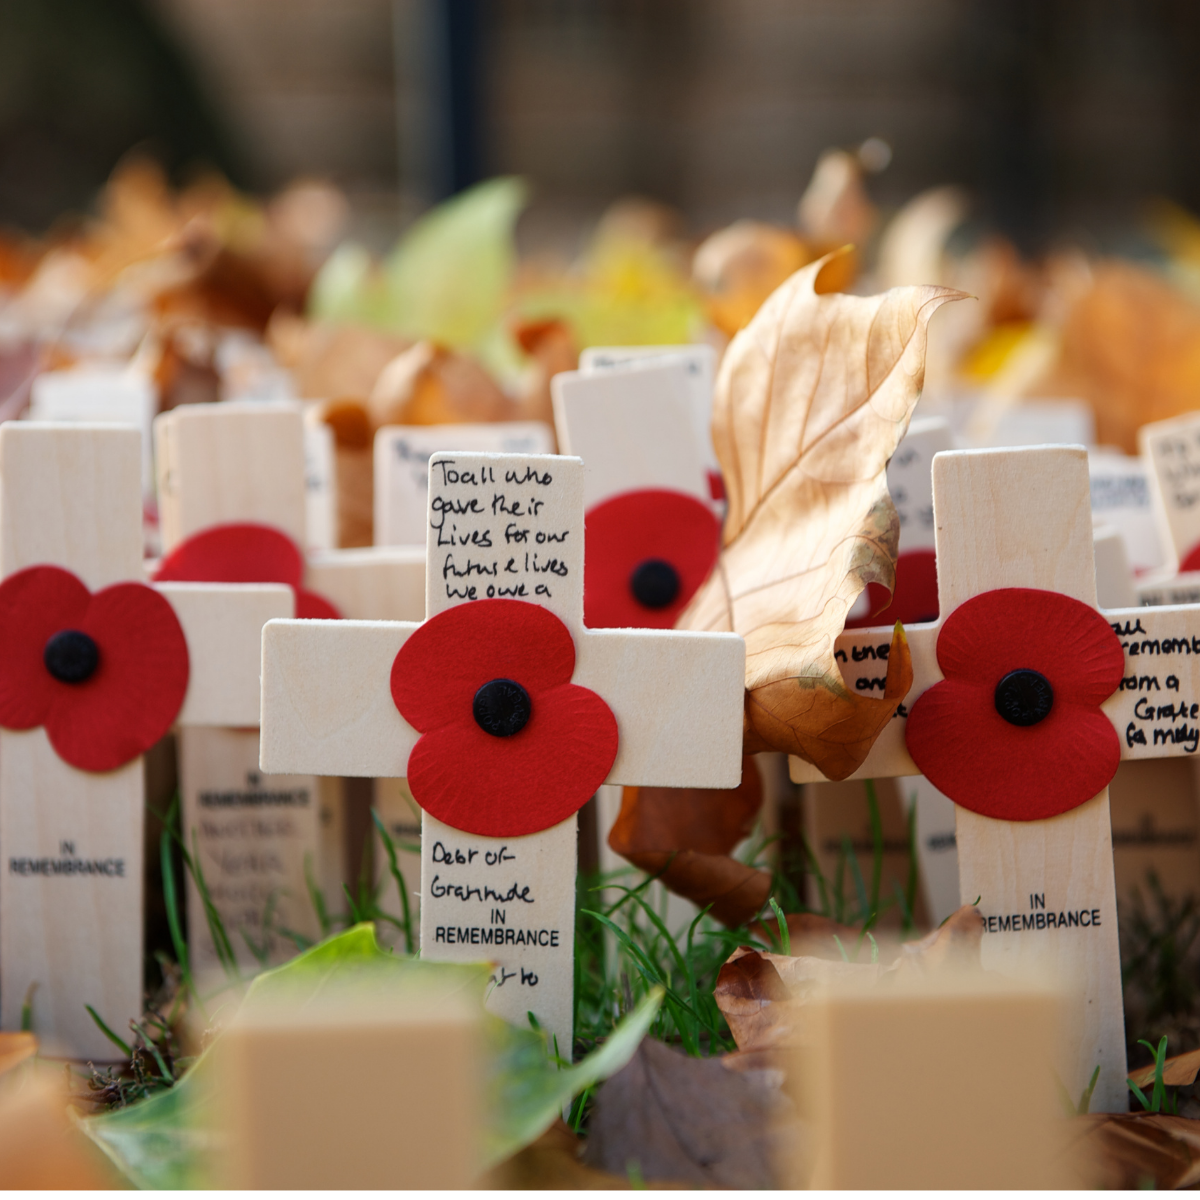 Remembrance day crosses and poppies